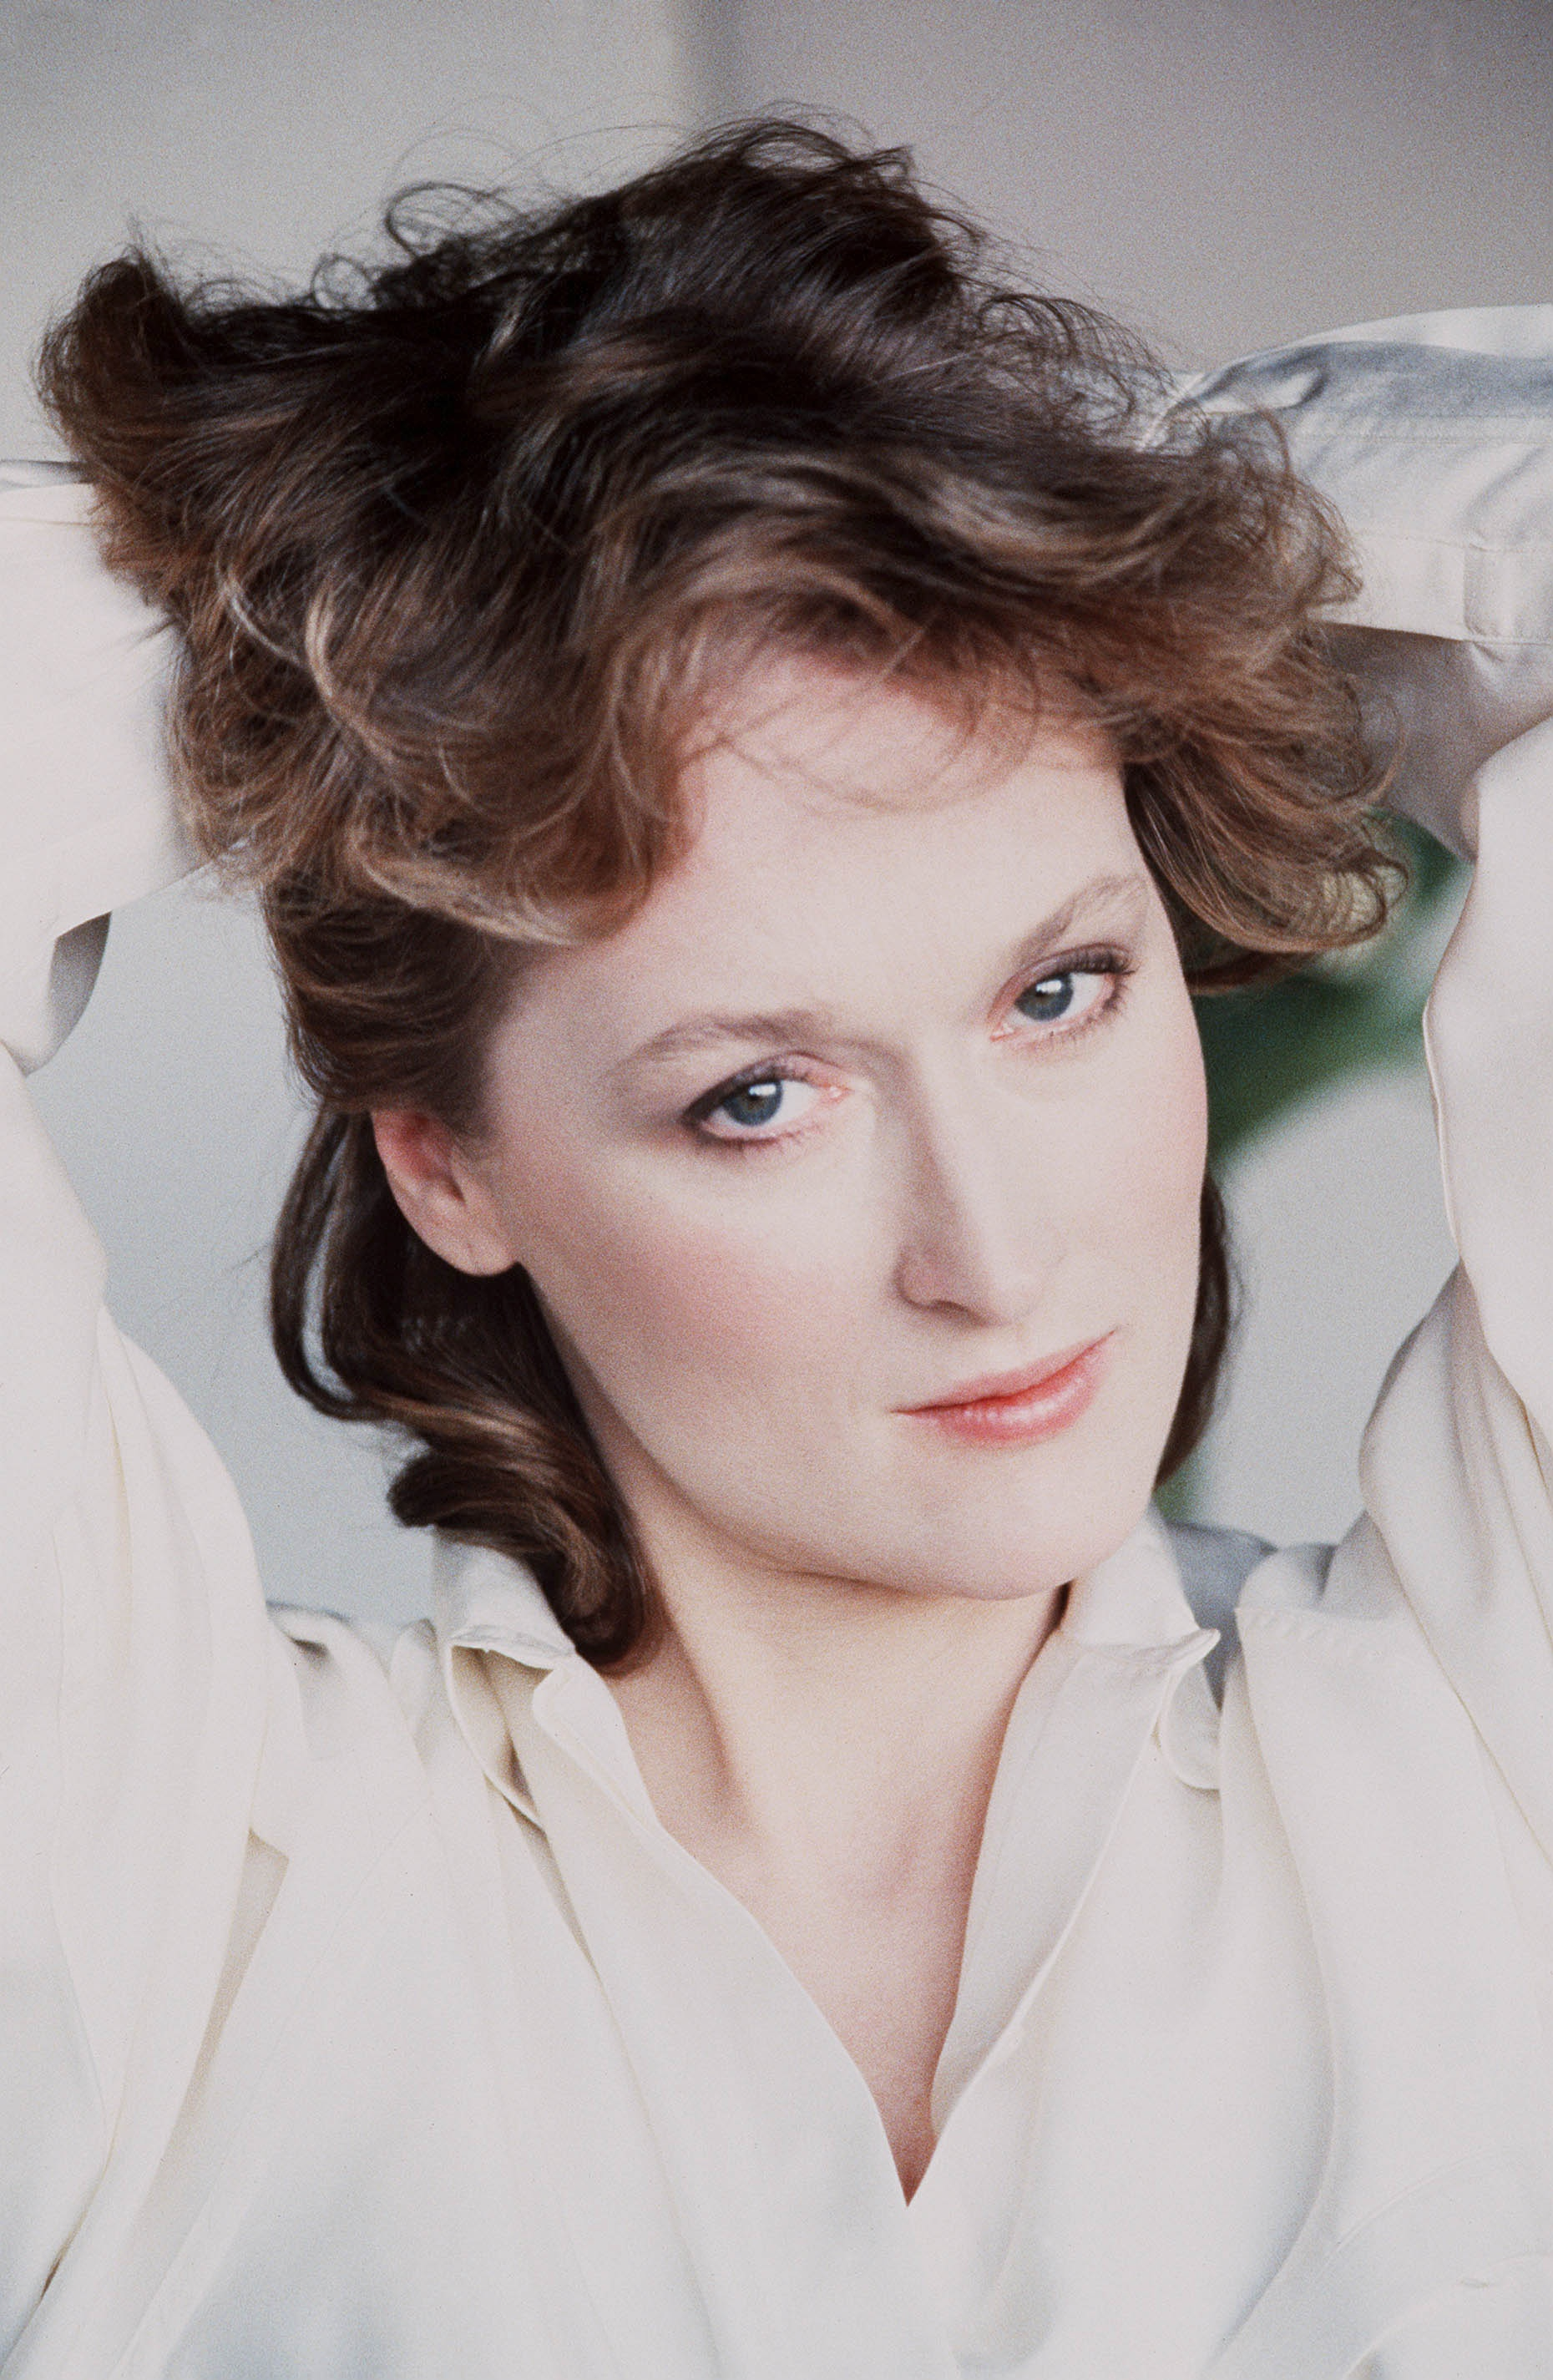 meryl streep All the latest breaking news on meryl streep browse the independent's complete collection of articles and commentary on meryl streep.